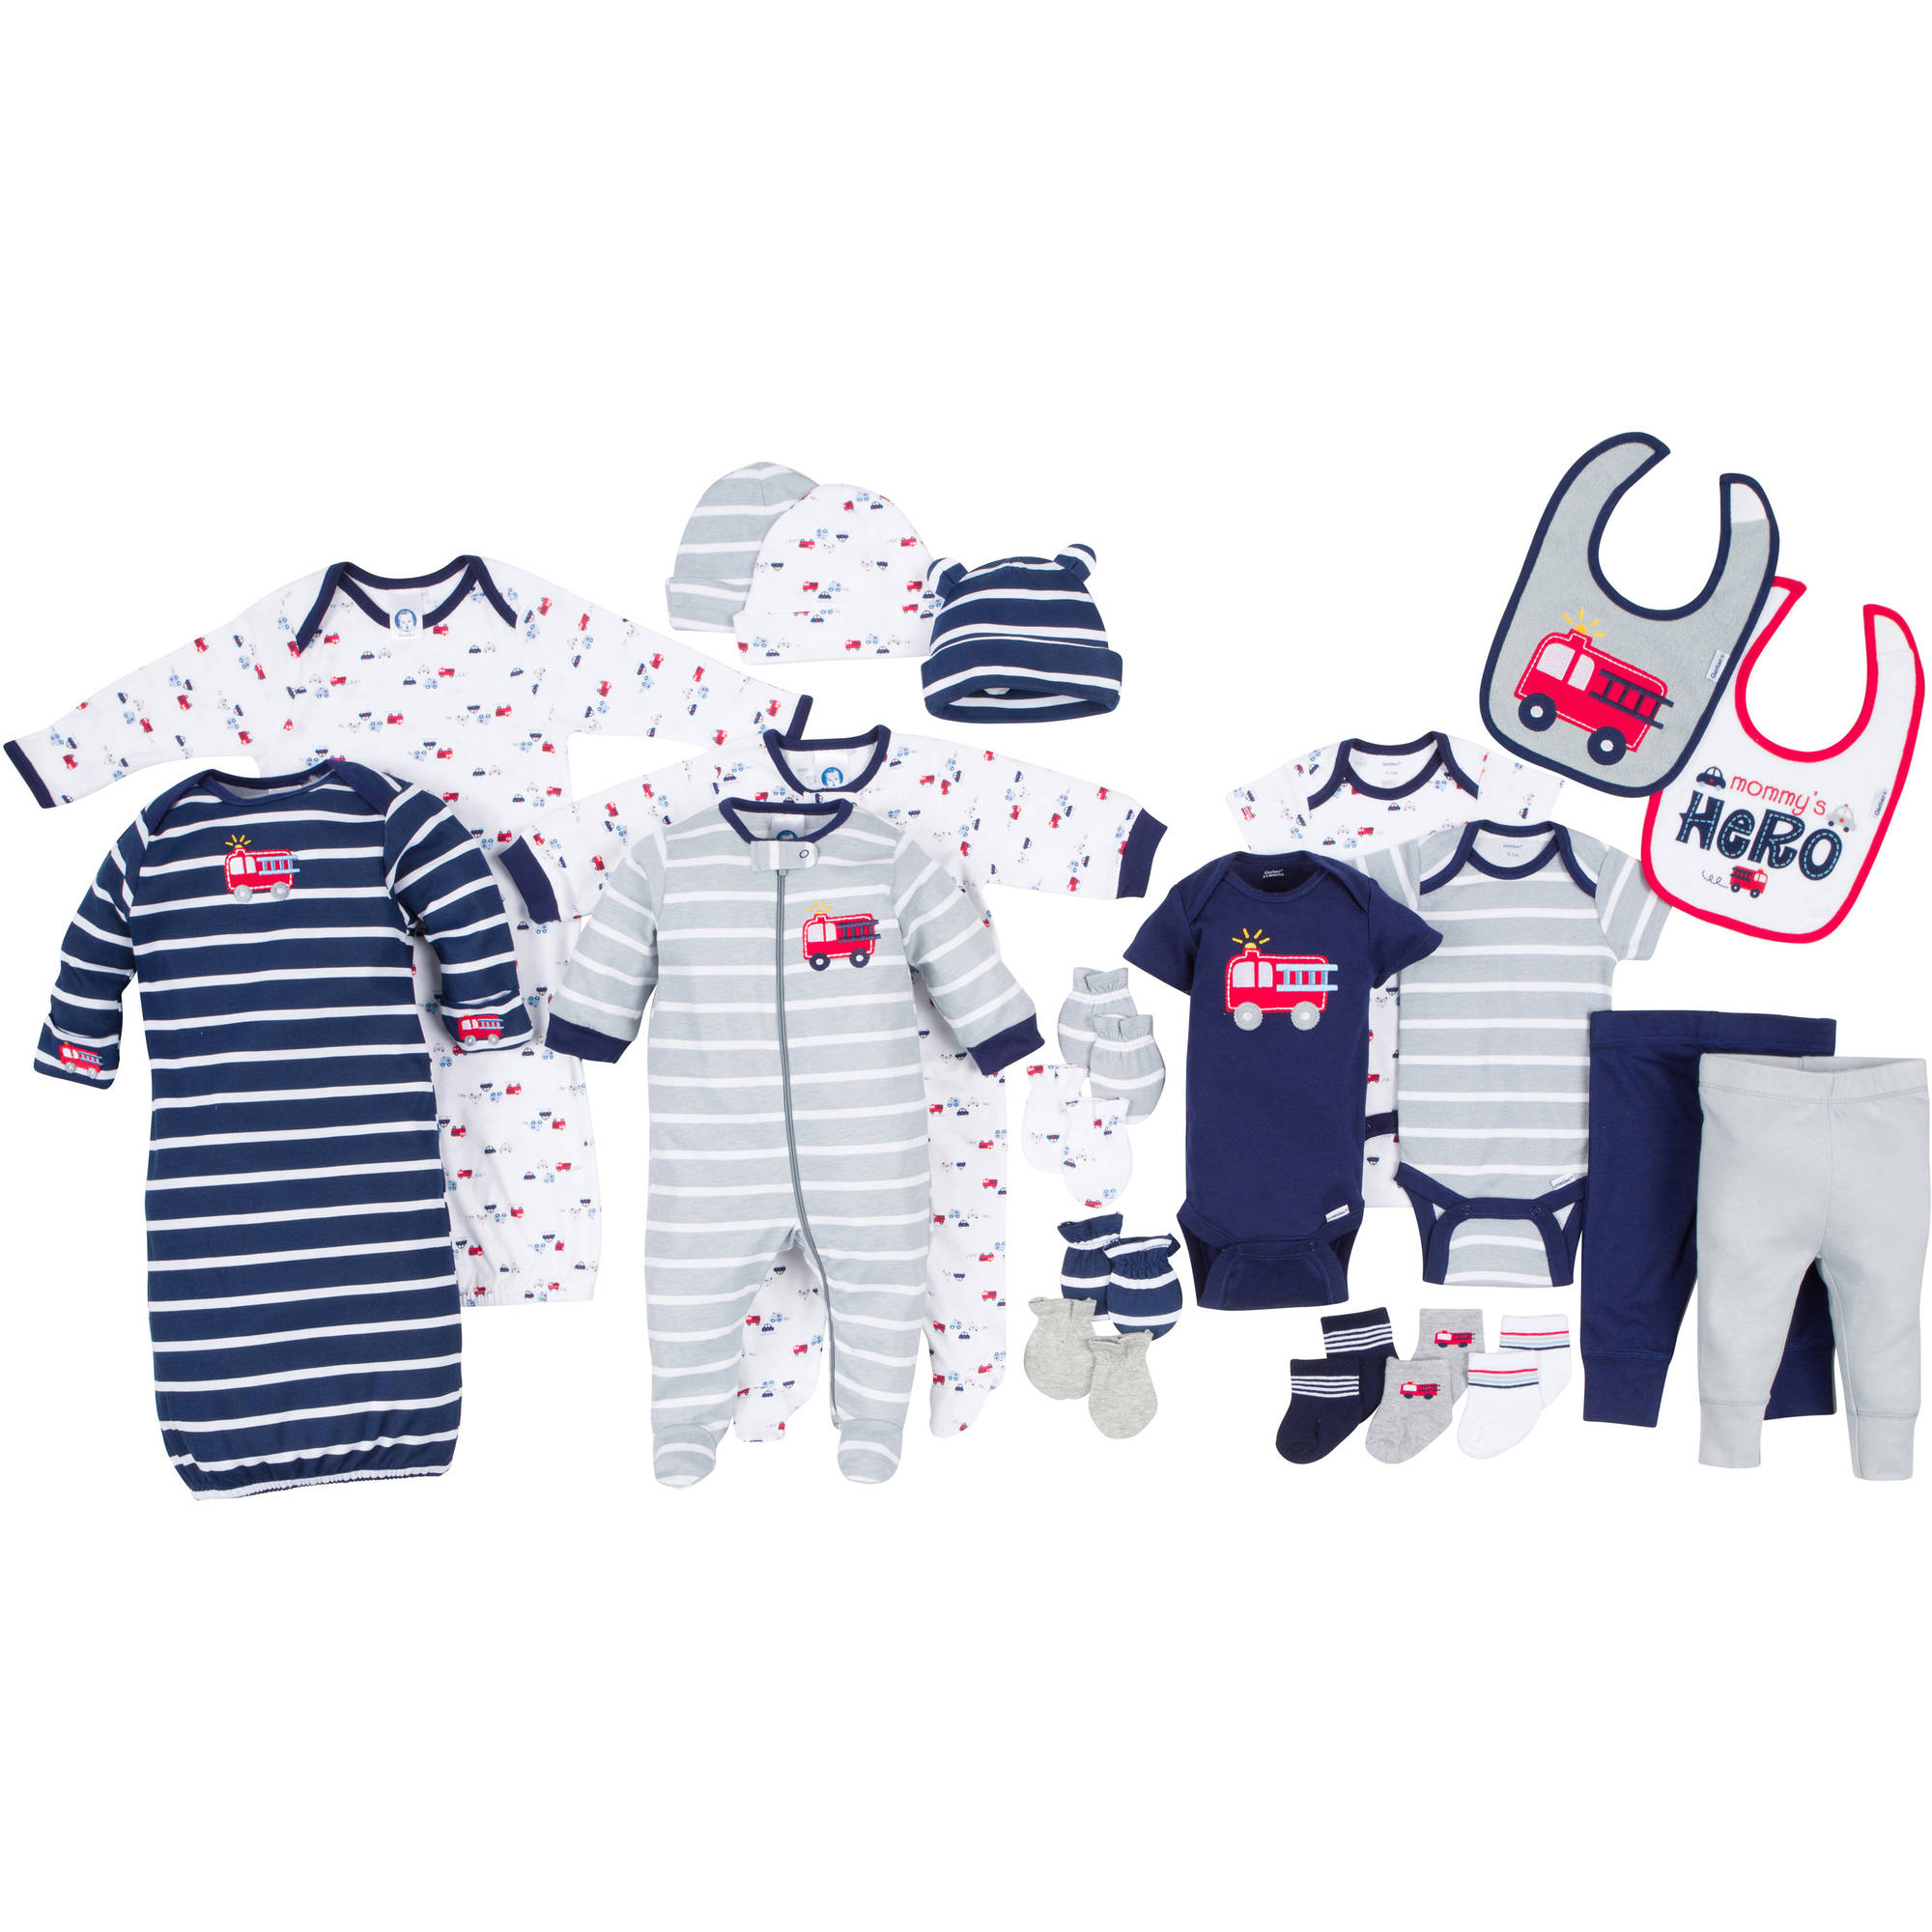 Gerber Newborn Baby Boy Perfect Baby Shower Gift 22-Piece Layette Set, Age 0-3M